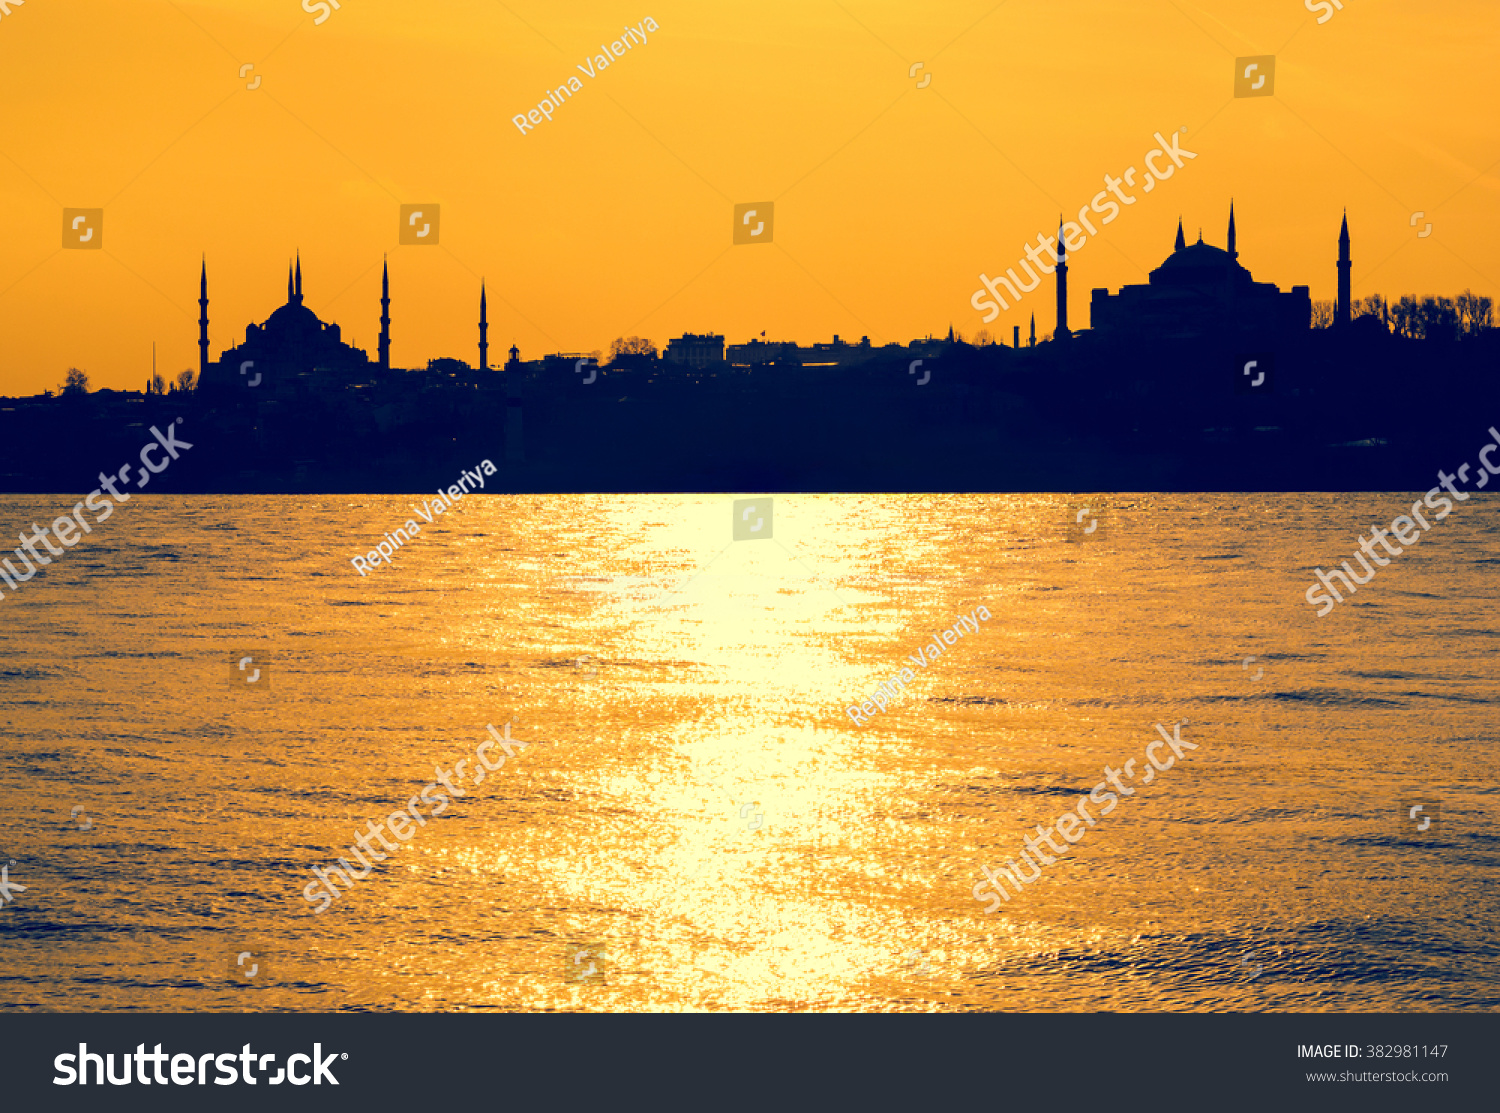 royalty-free sunset on seaside with silhouettes of… #382981147 stock